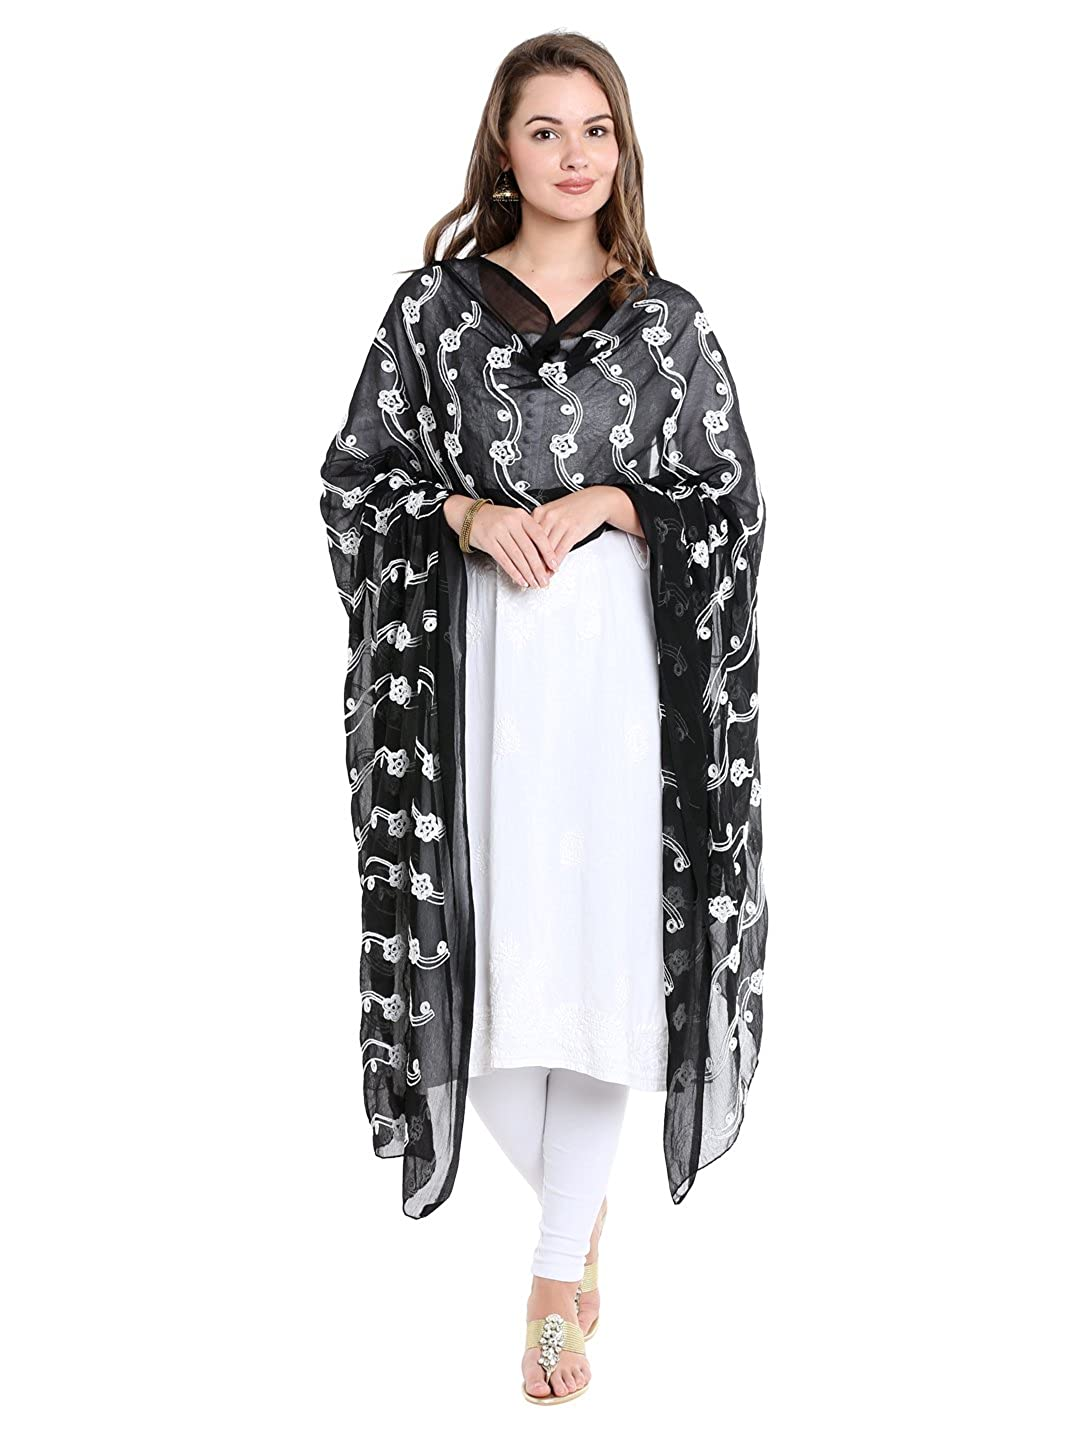 Dupatta Bazaar Woman's Black and White Embrodiered Chiffon dupatta DB1491